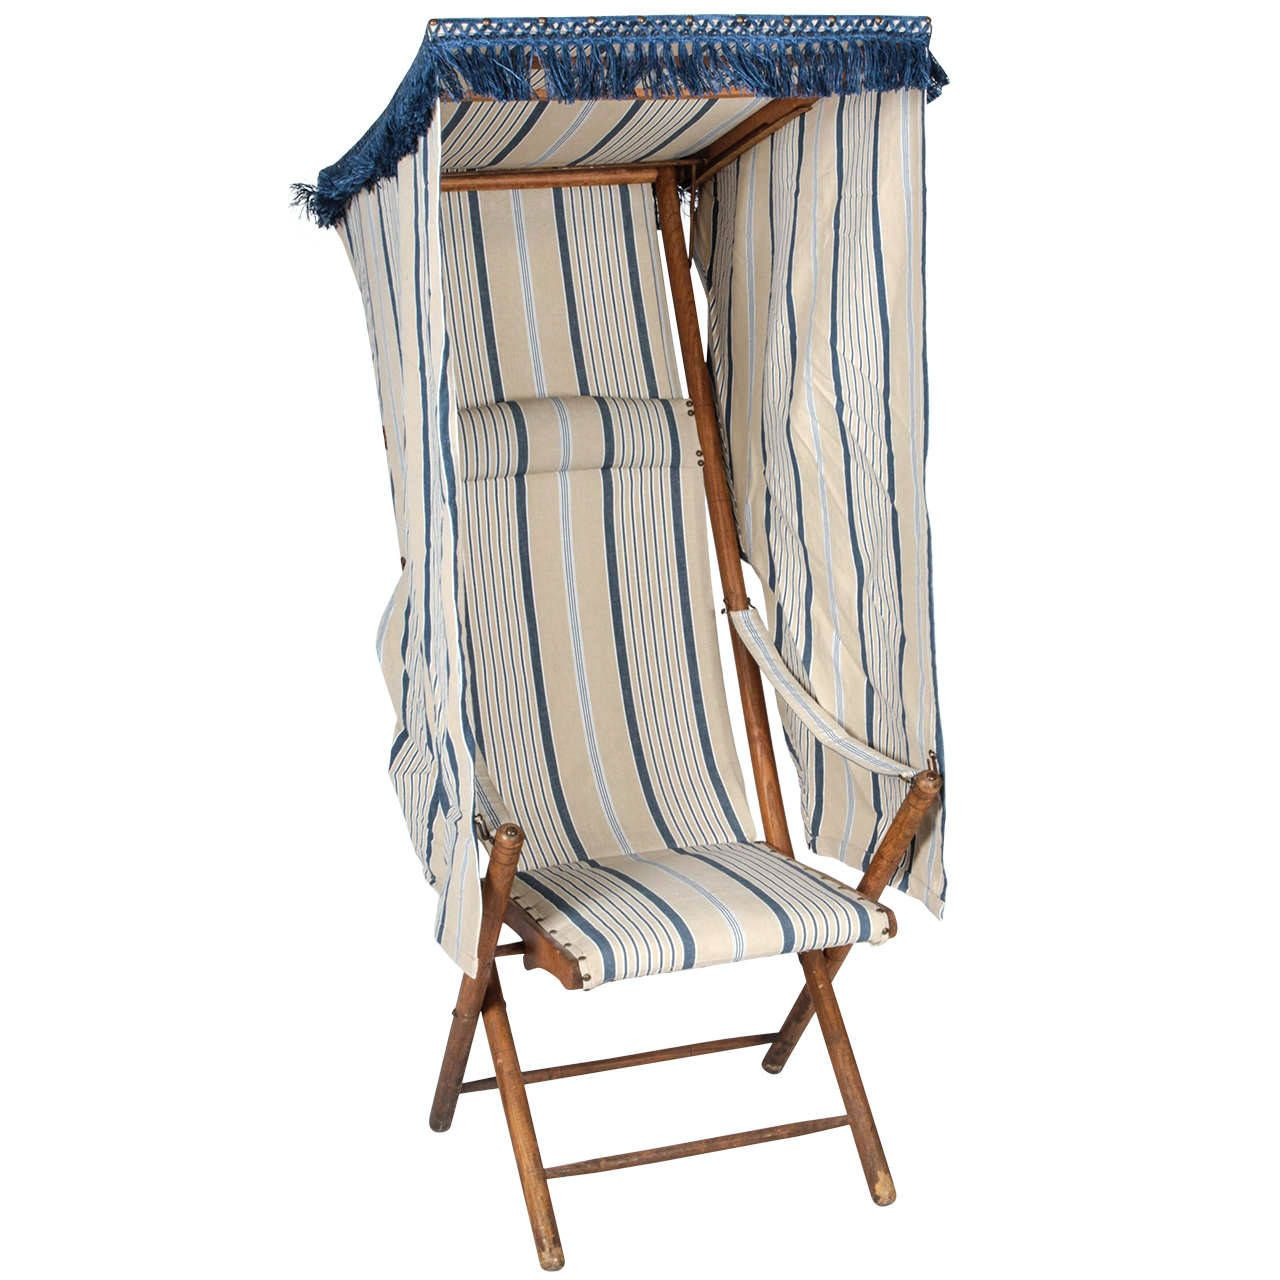 French Beach Chair with Canopy From a unique collection